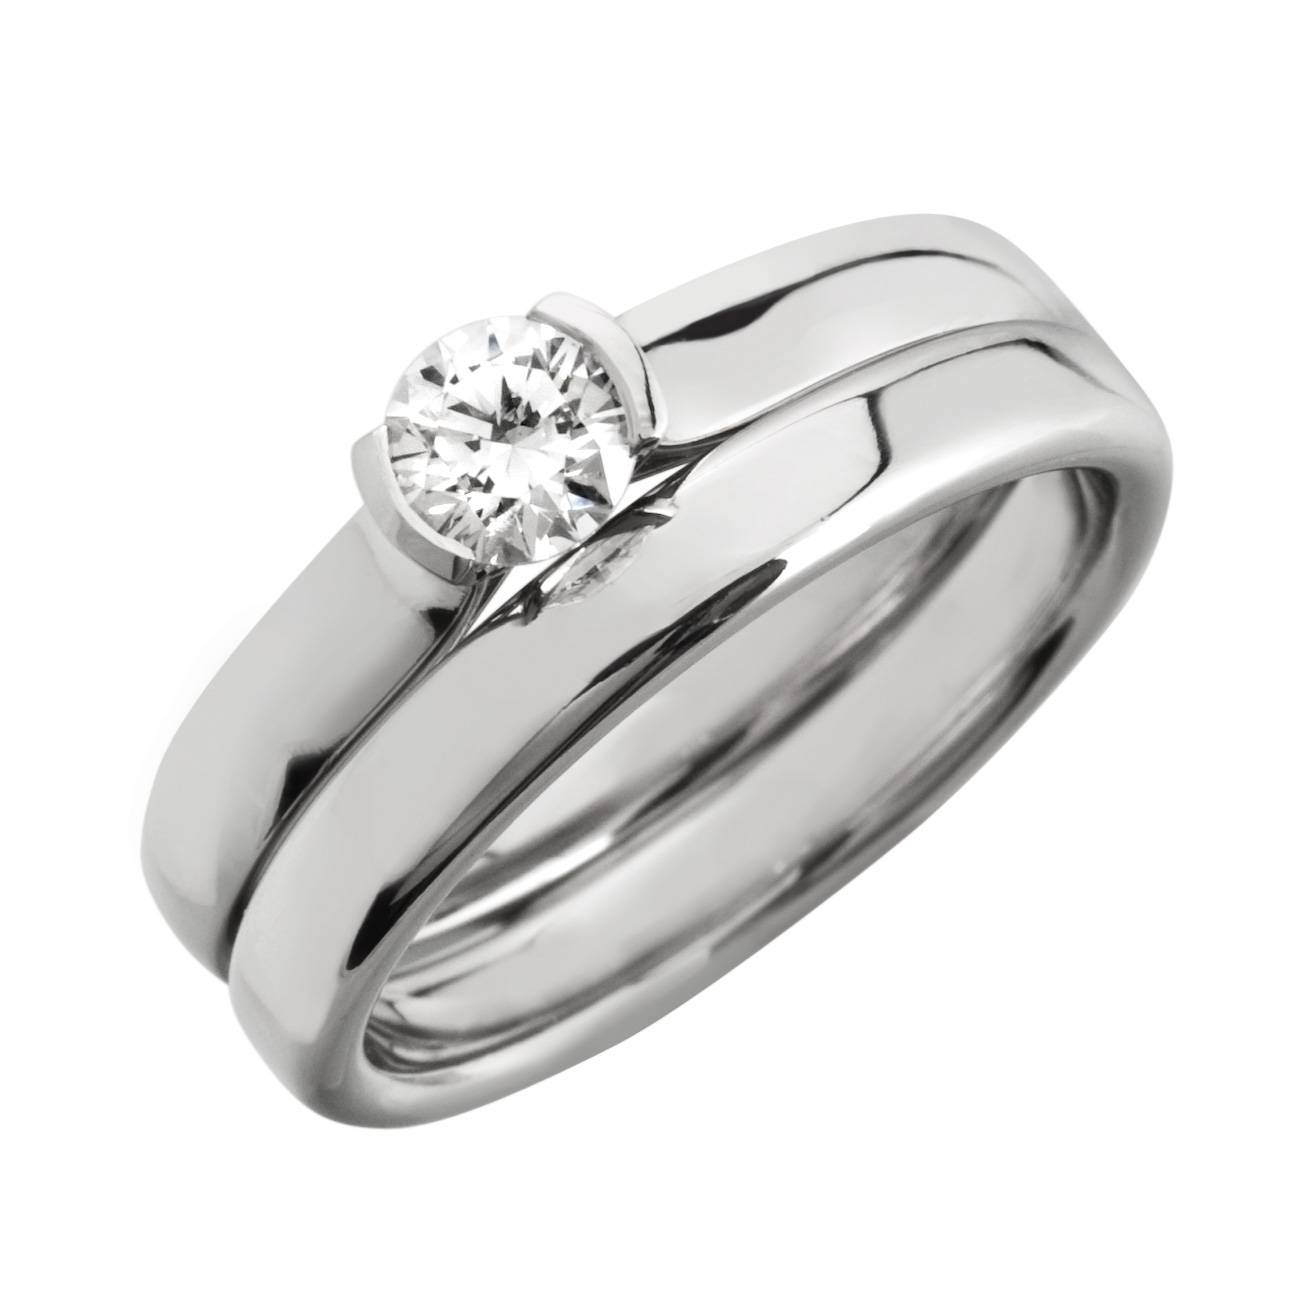 Wedding Rings : Engagement And Wedding Rings Wedding And Within Wedding Engagement Bands (View 6 of 15)